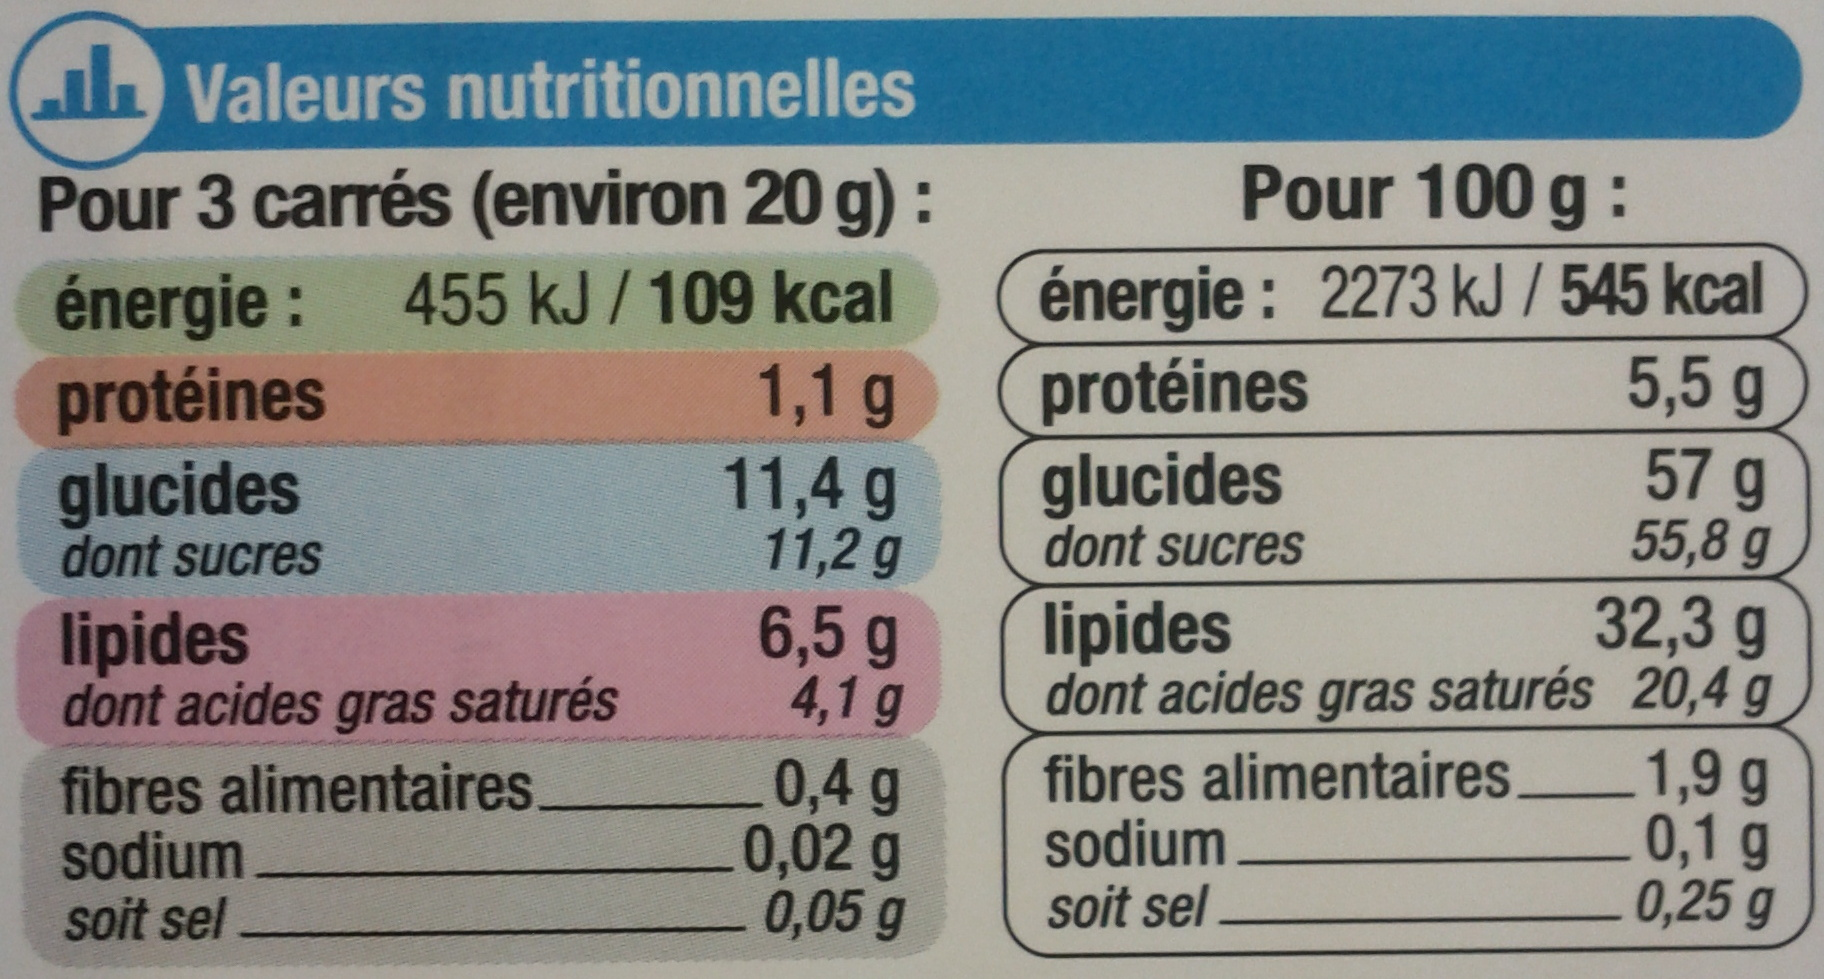 Chocolat lait au lait du pays alpin - Nutrition facts